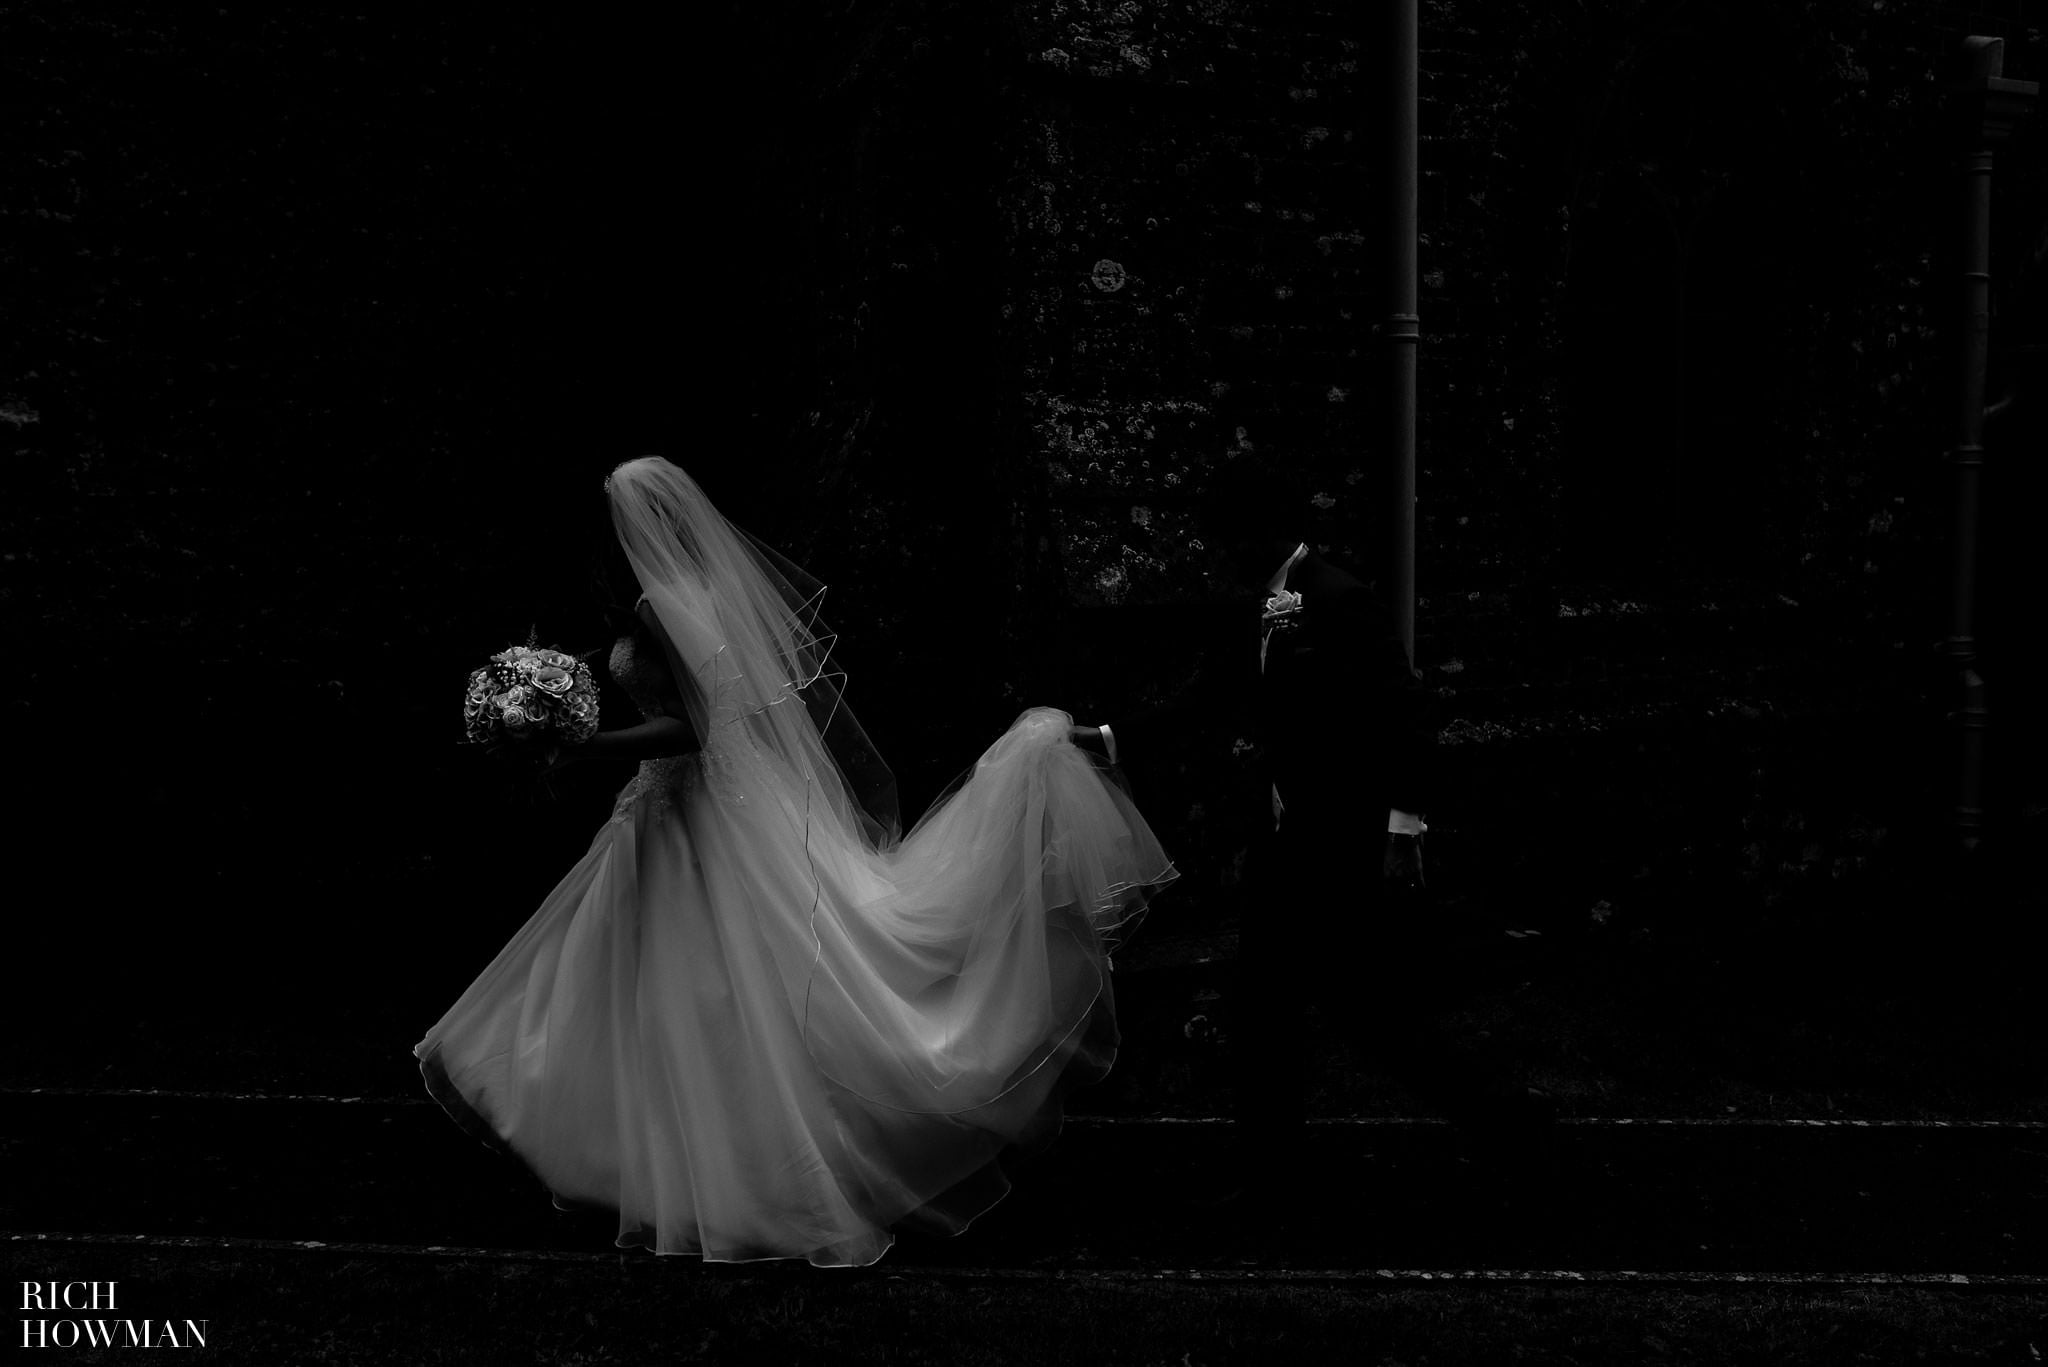 Creative black and white wedding photograph of the bride walking past the church with the groom helping her hold her wedding dress